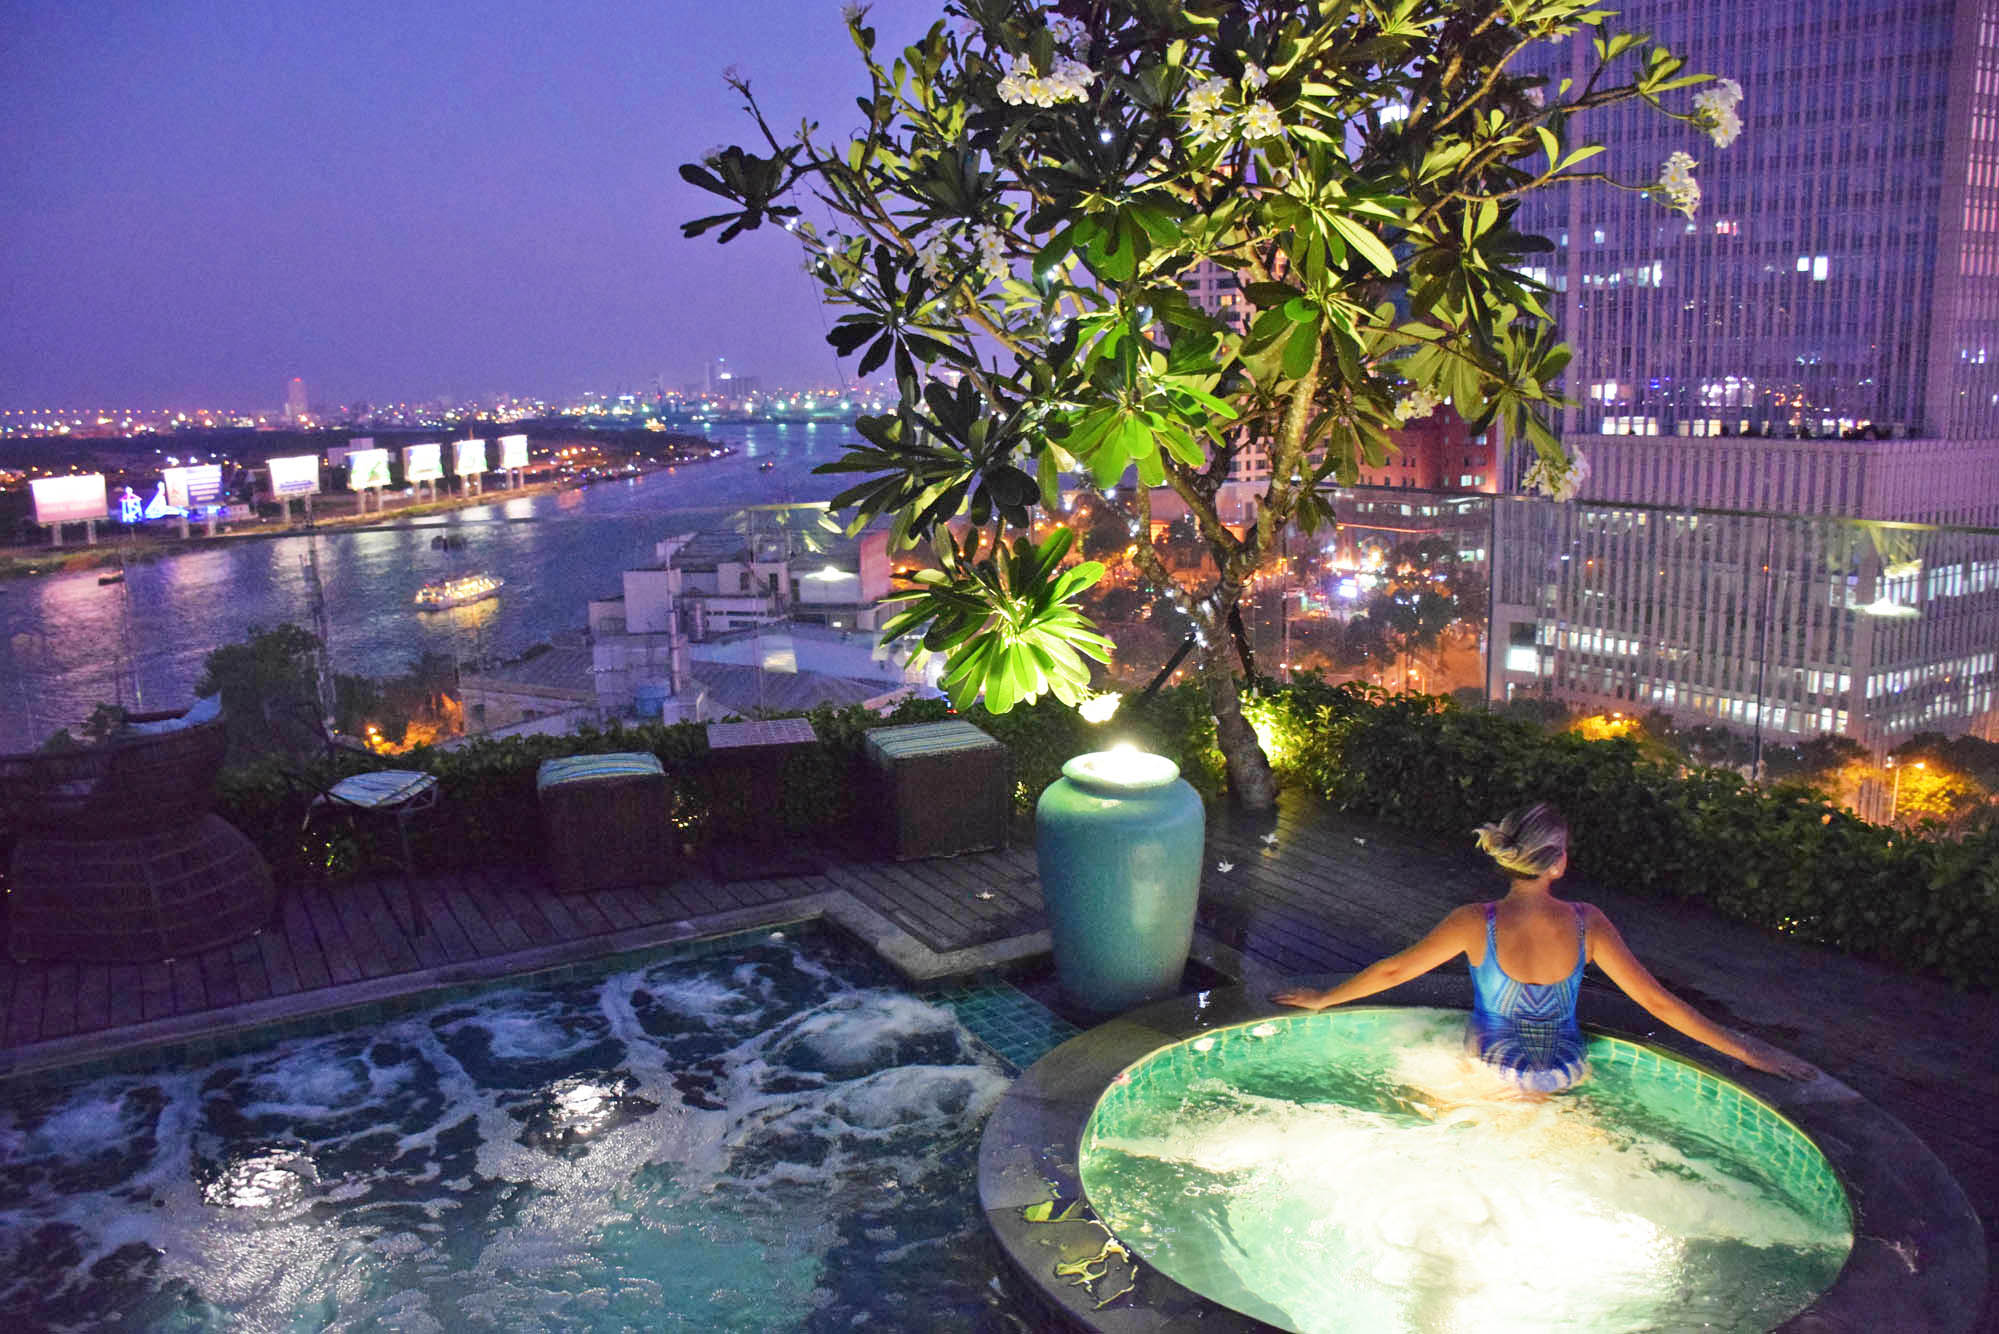 Piscina no rooftop do Silverland Jolie Hotel & Spa, no Distrito 1